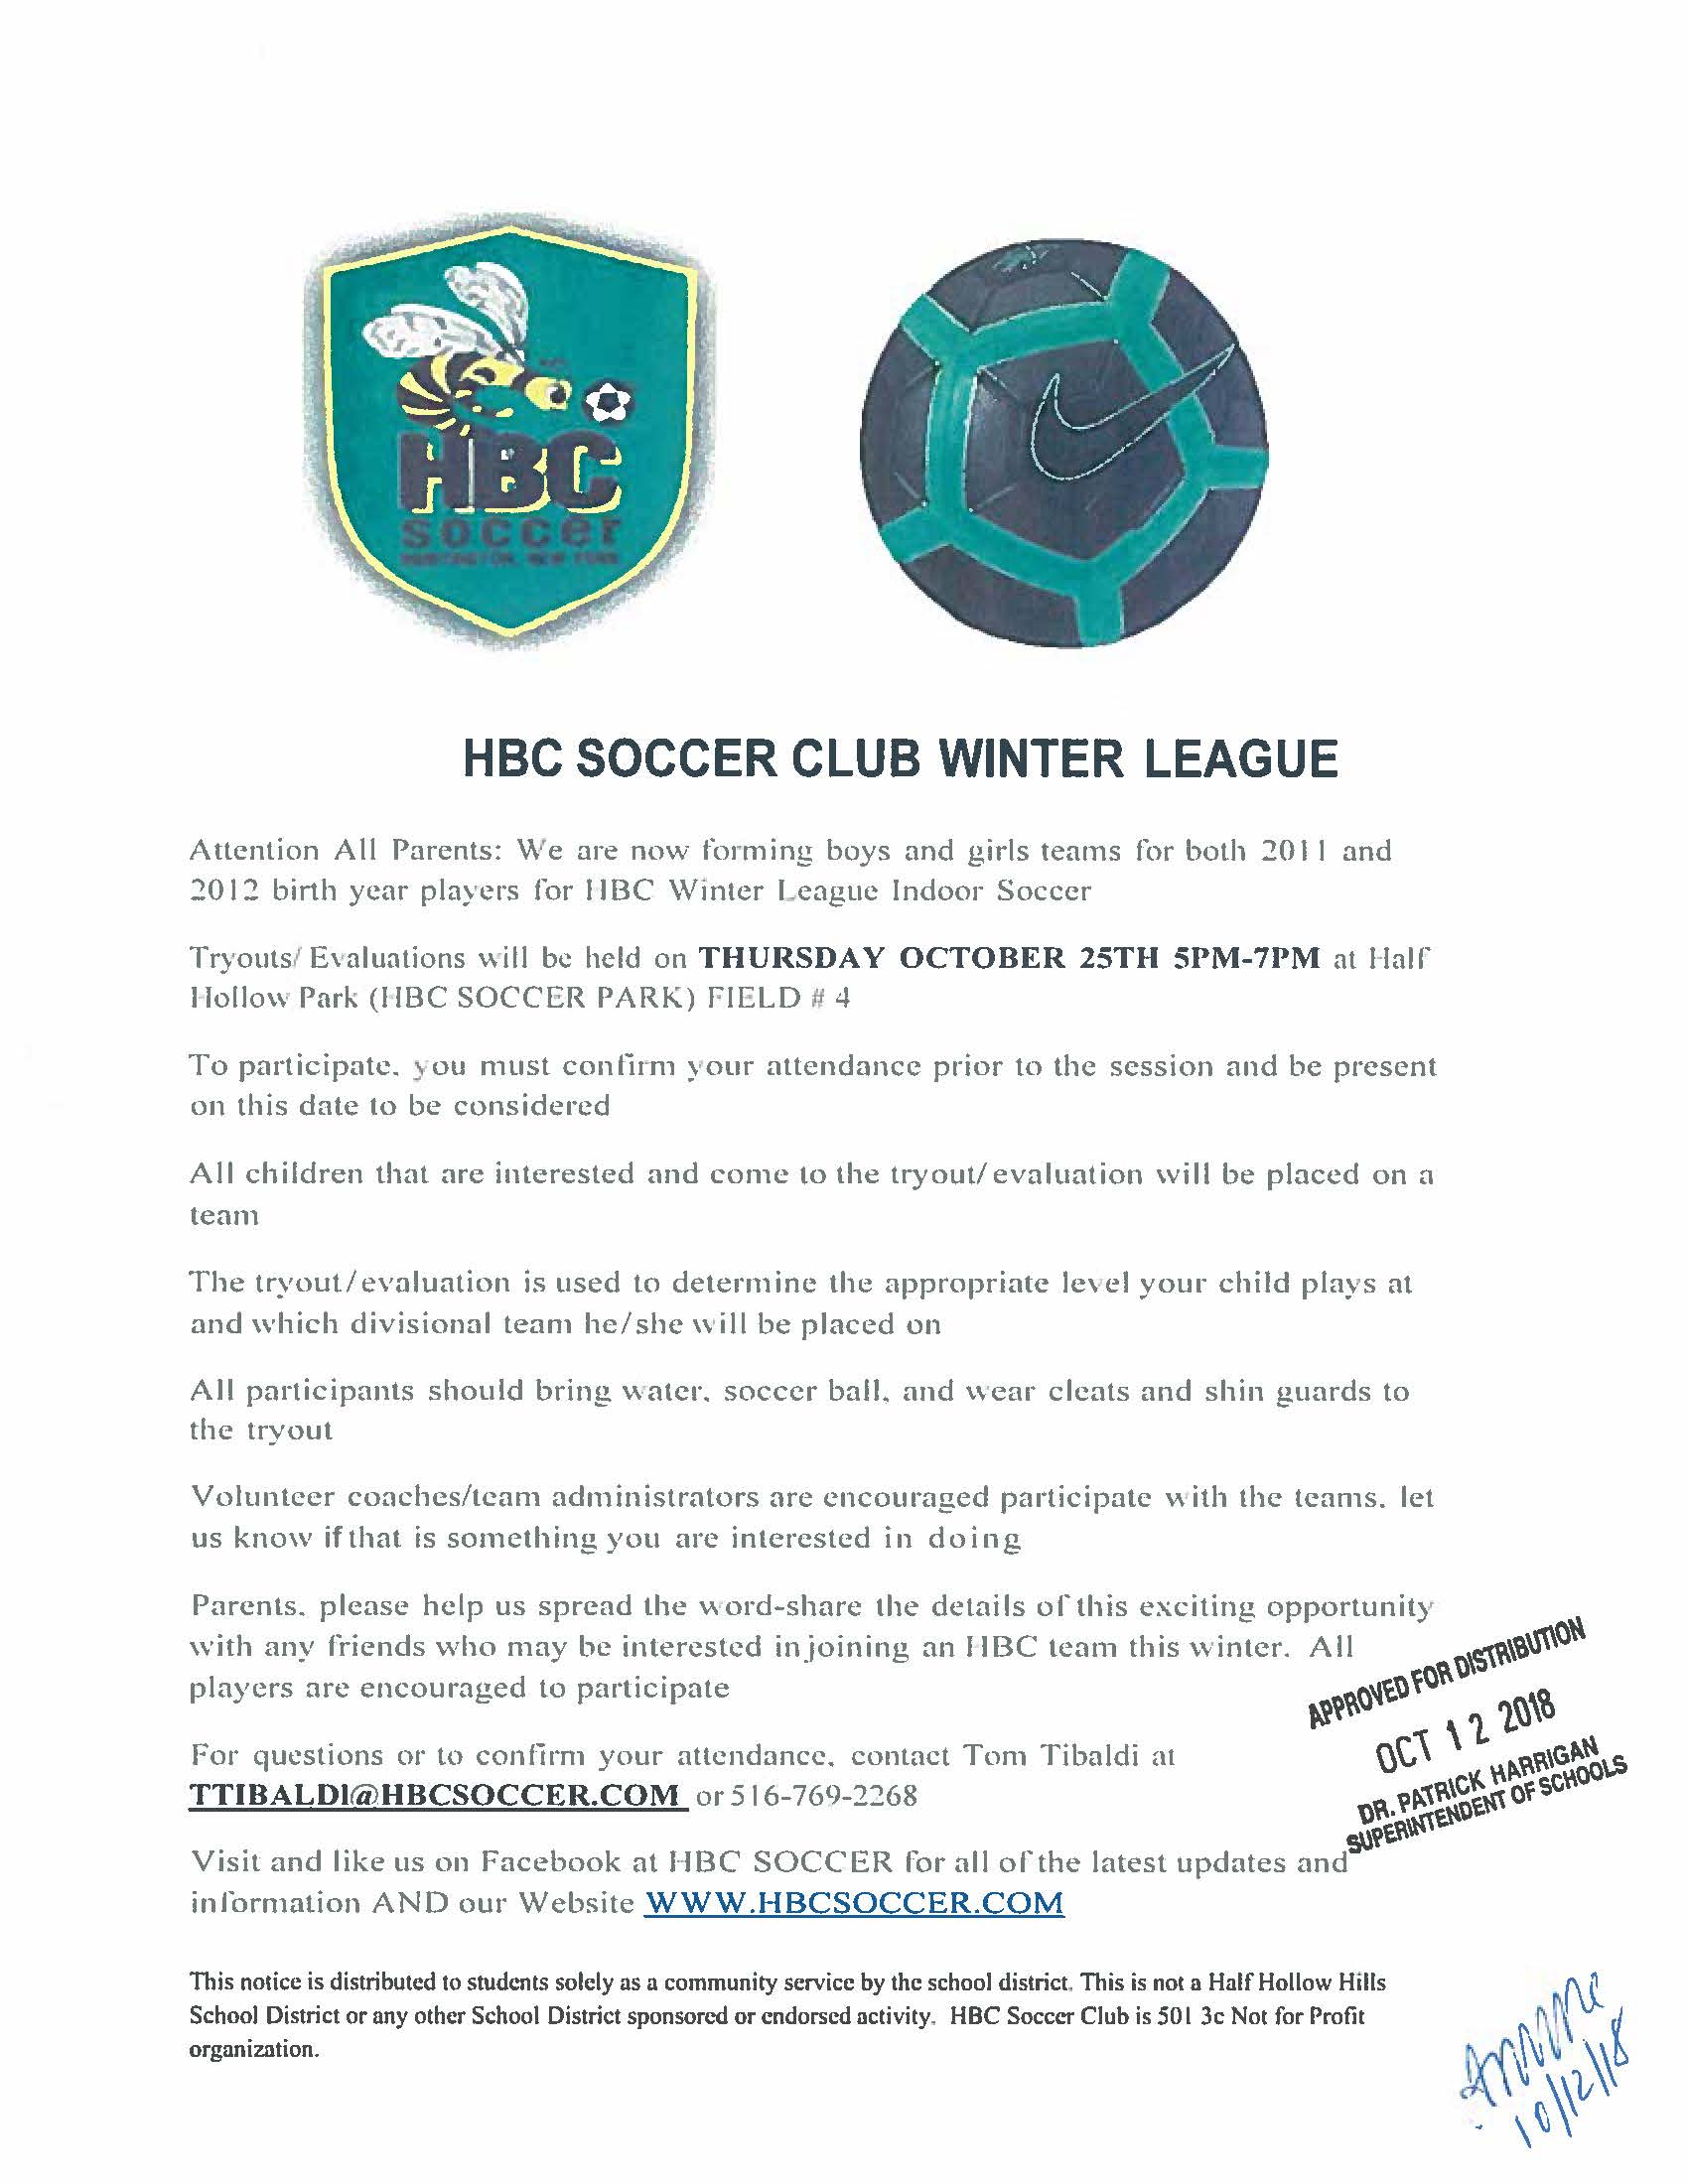 HBC WINTER LEAGUE PLAY FOR FOR 2011 AND 2012 BOYS AND GIRLS